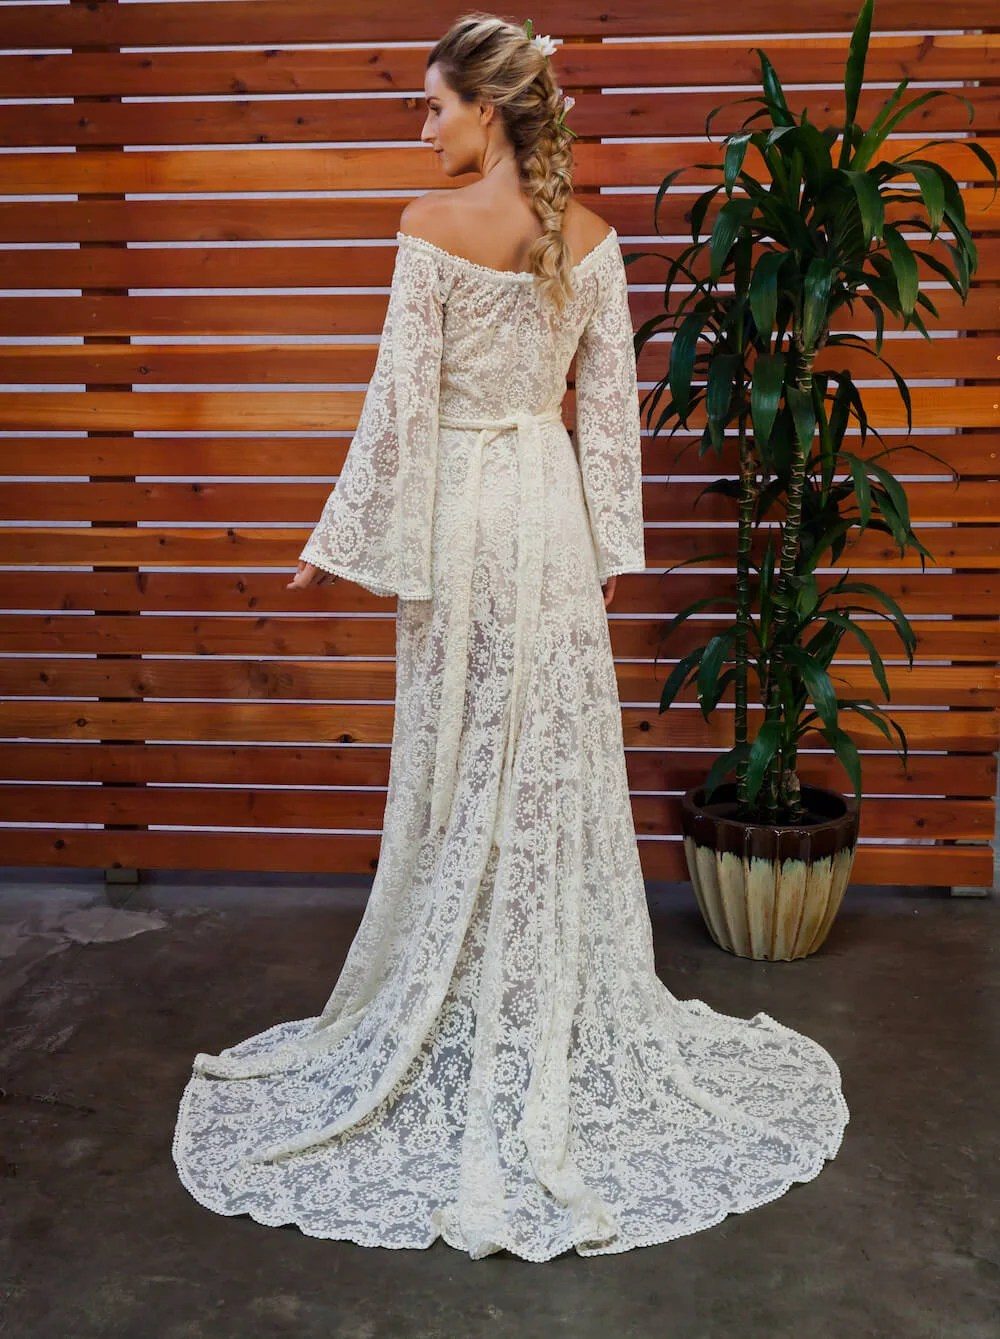 Lace Shoulder Wedding Dress